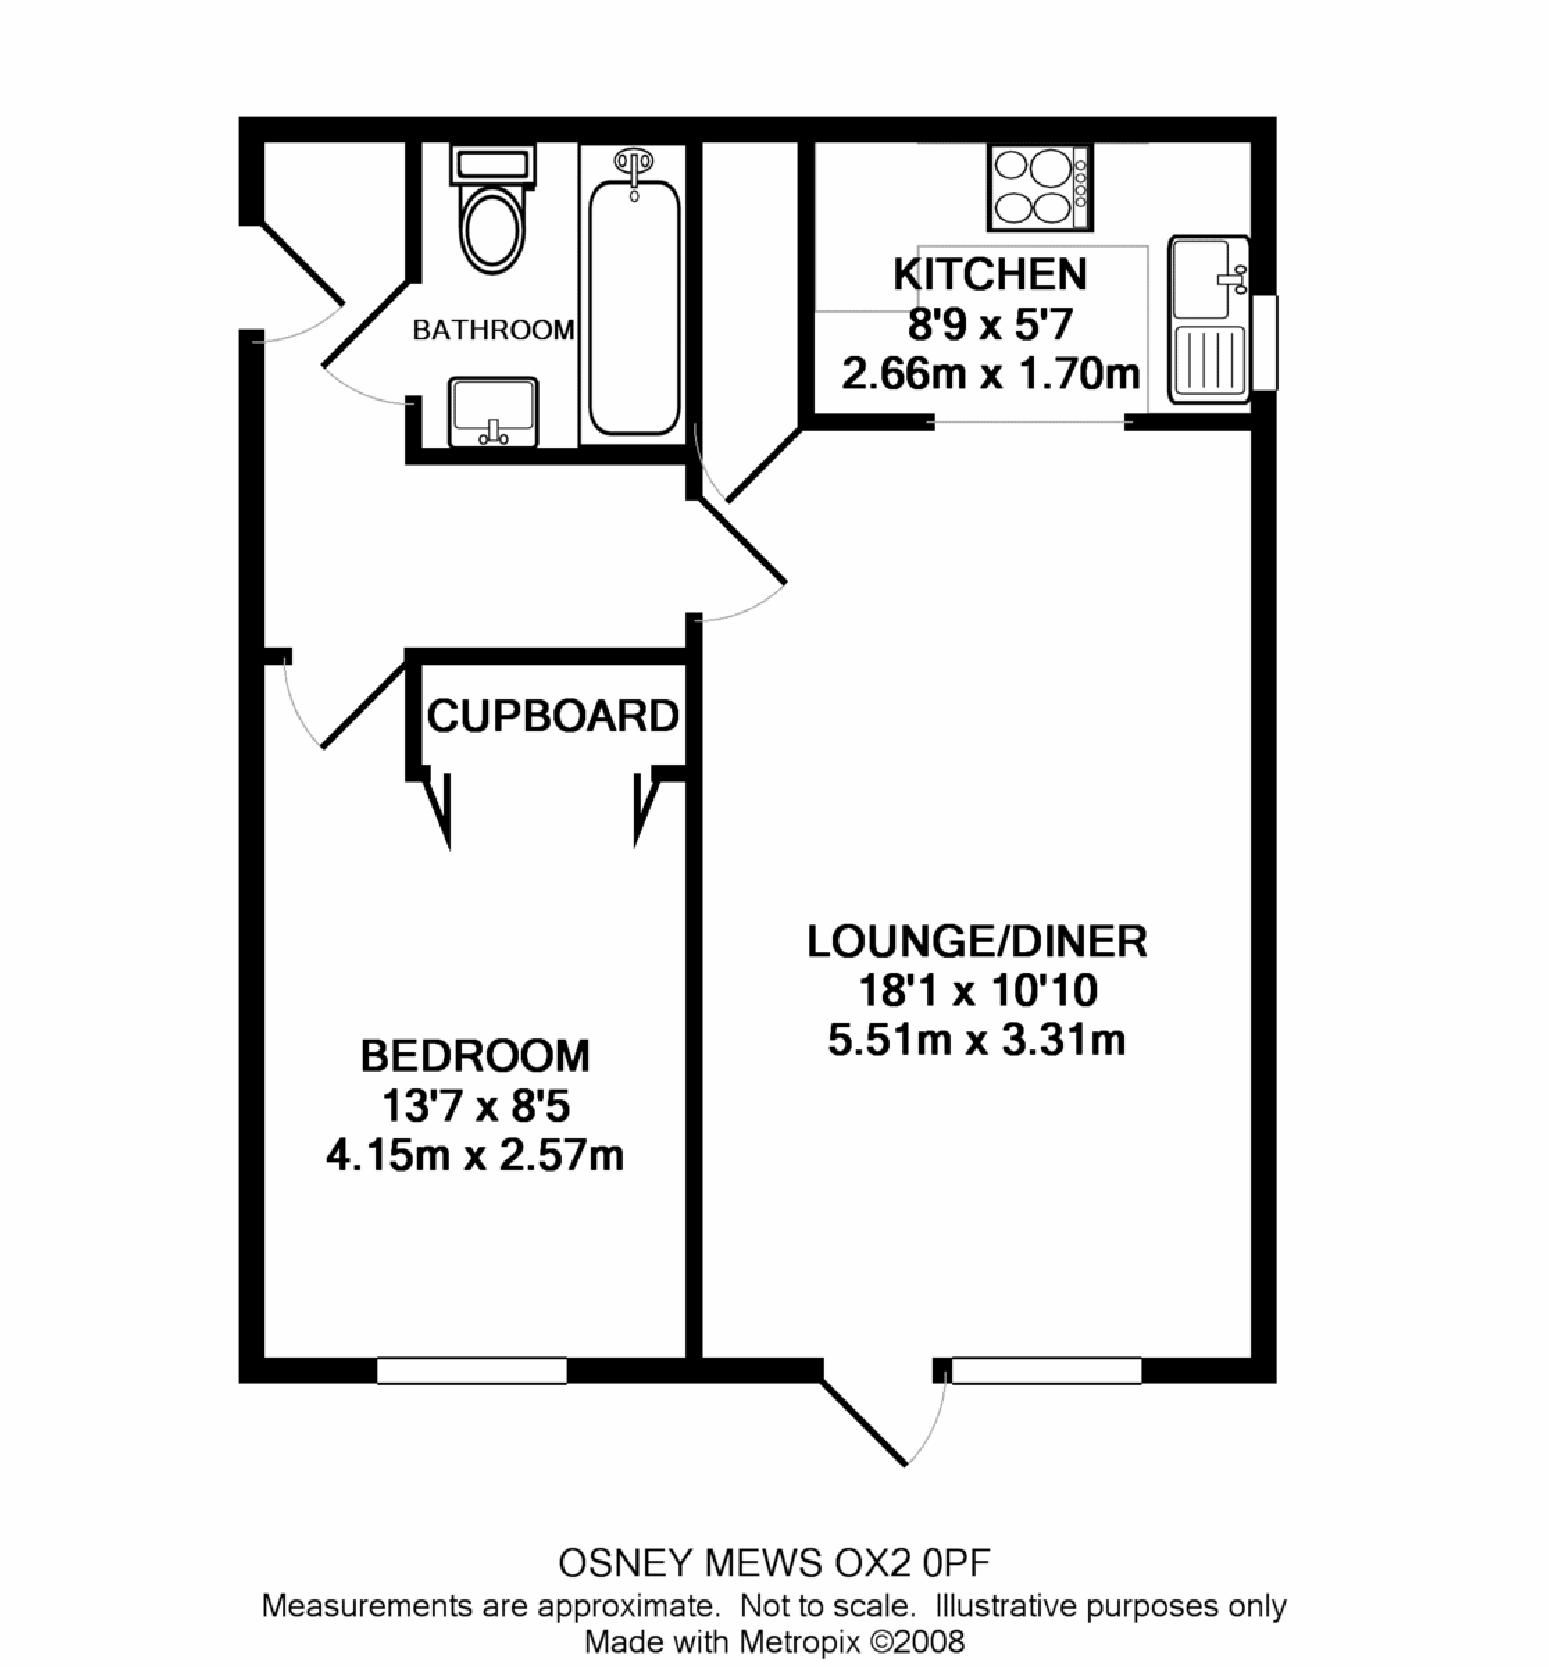 Ordinaire 1 Bed Flat Floor Plans   Google Search